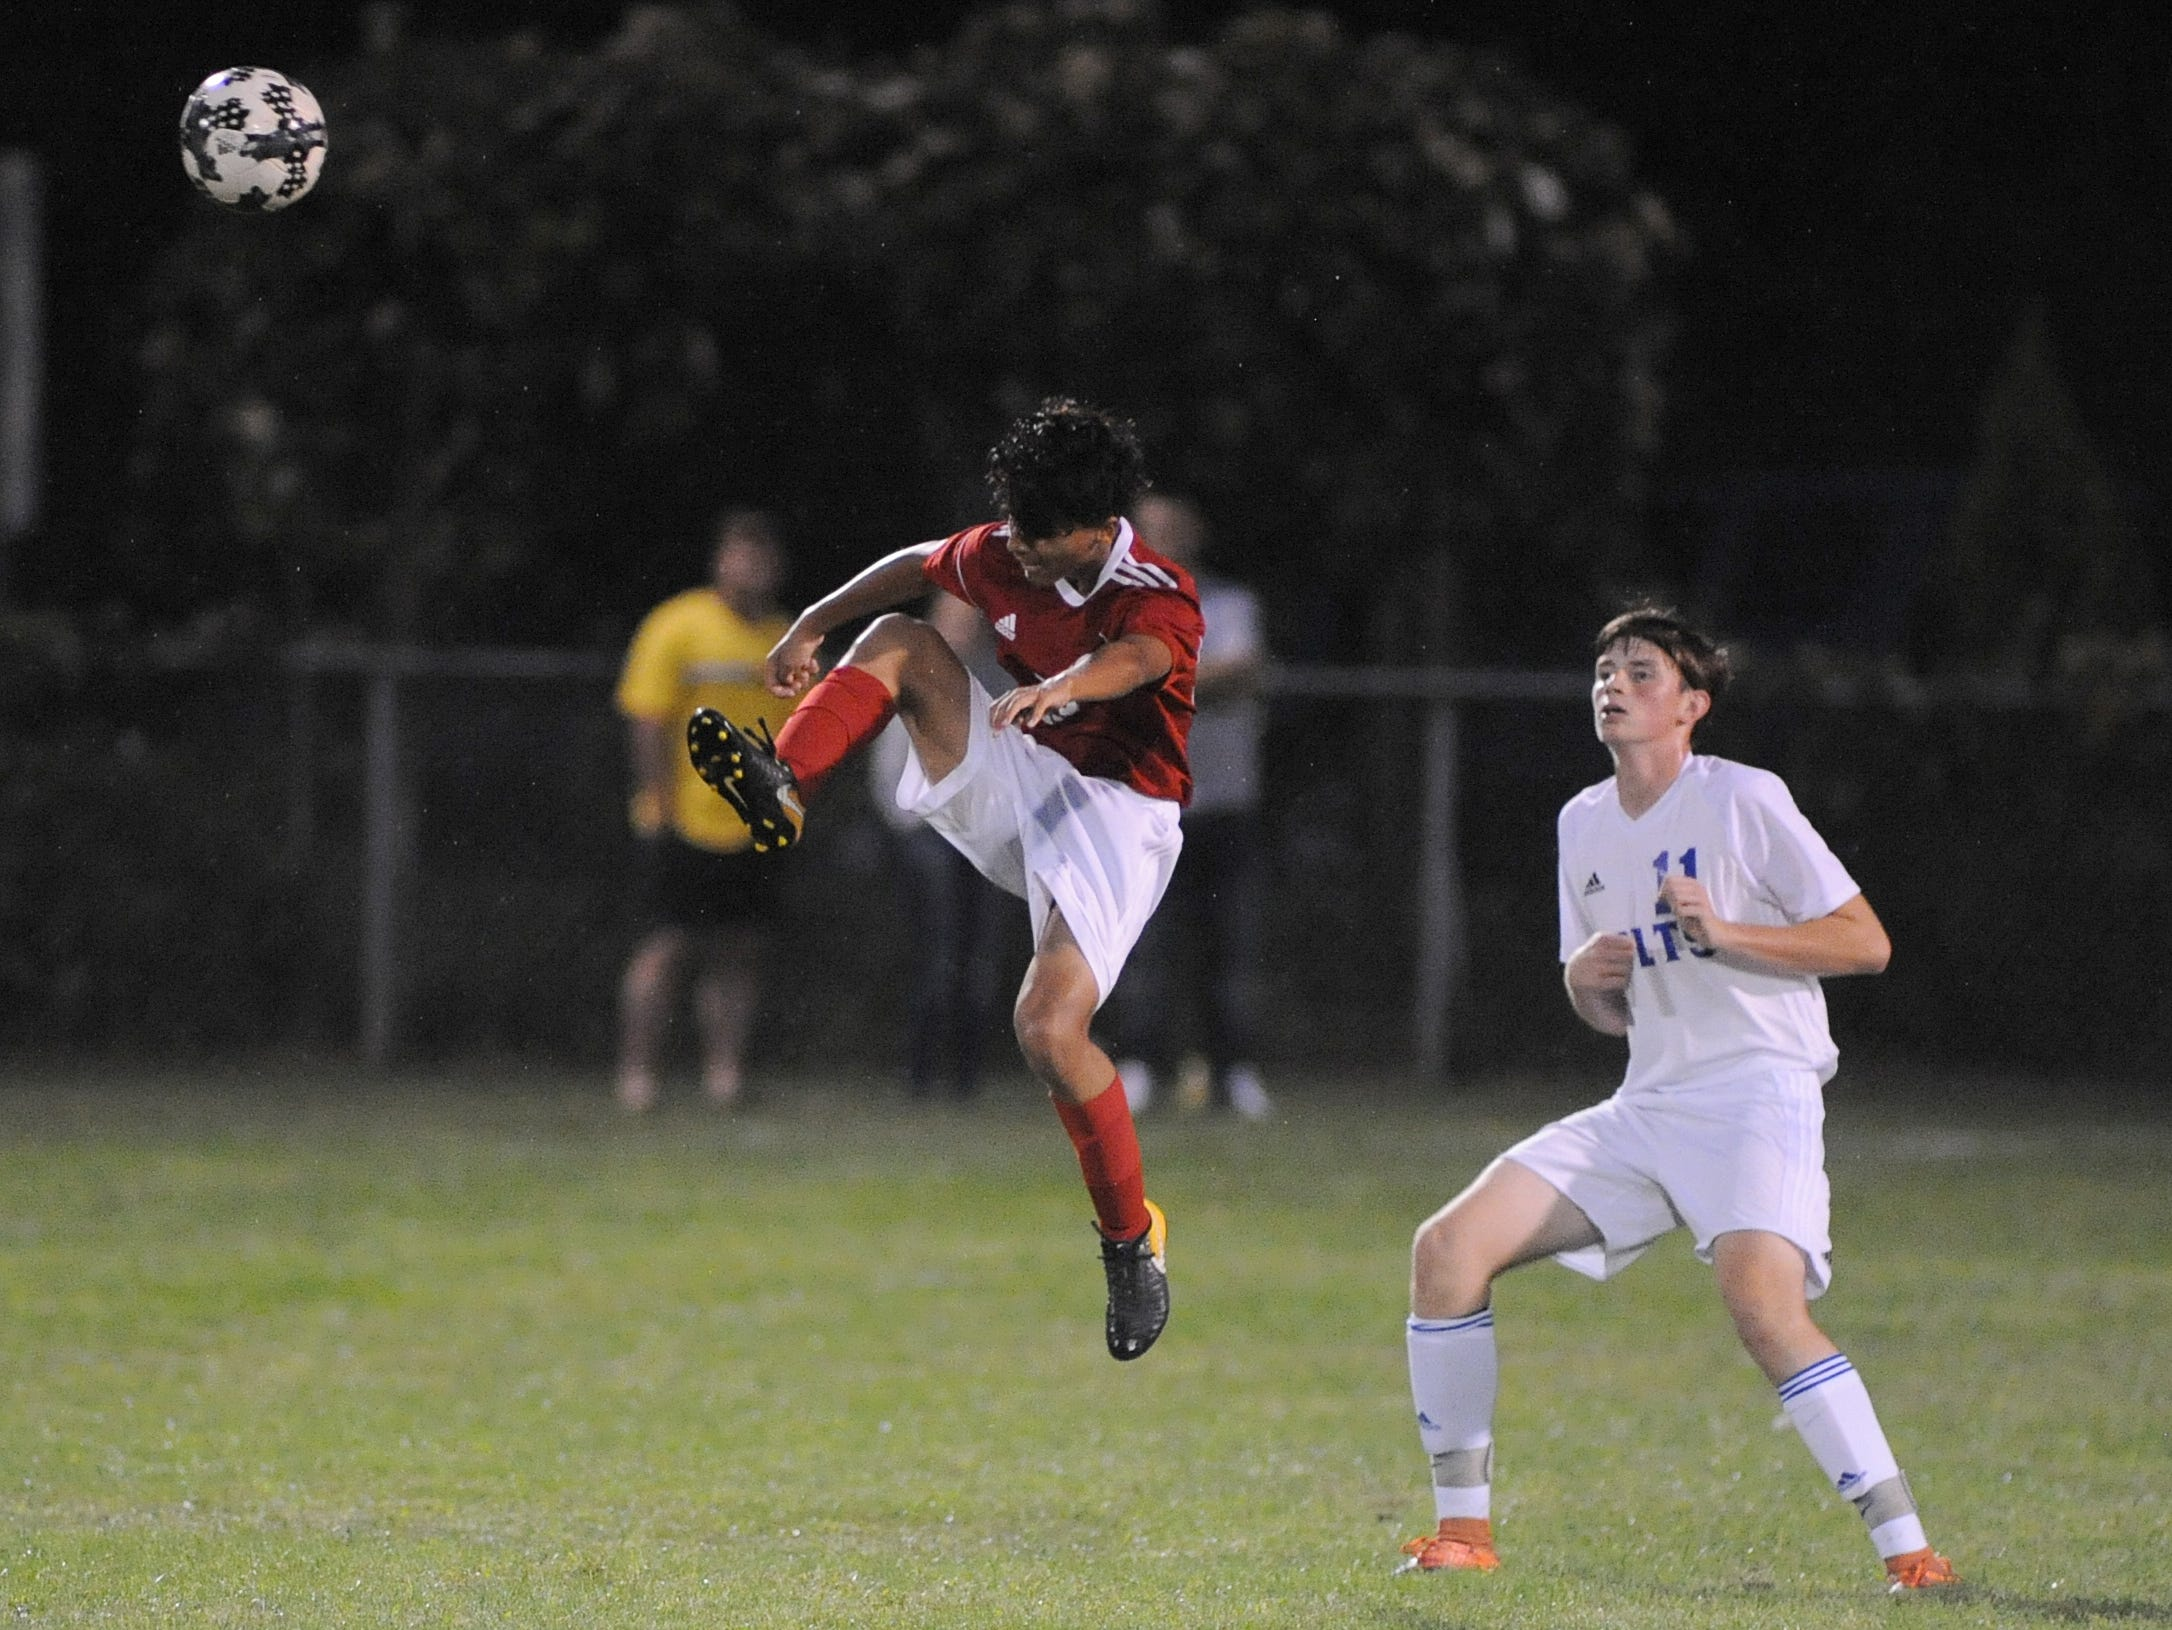 Vineland's Usmar Barrera moves the ball during a boys soccer game against Millville at Romano Sports Complex in Vineland, Monday, Sept. 17, 2018.